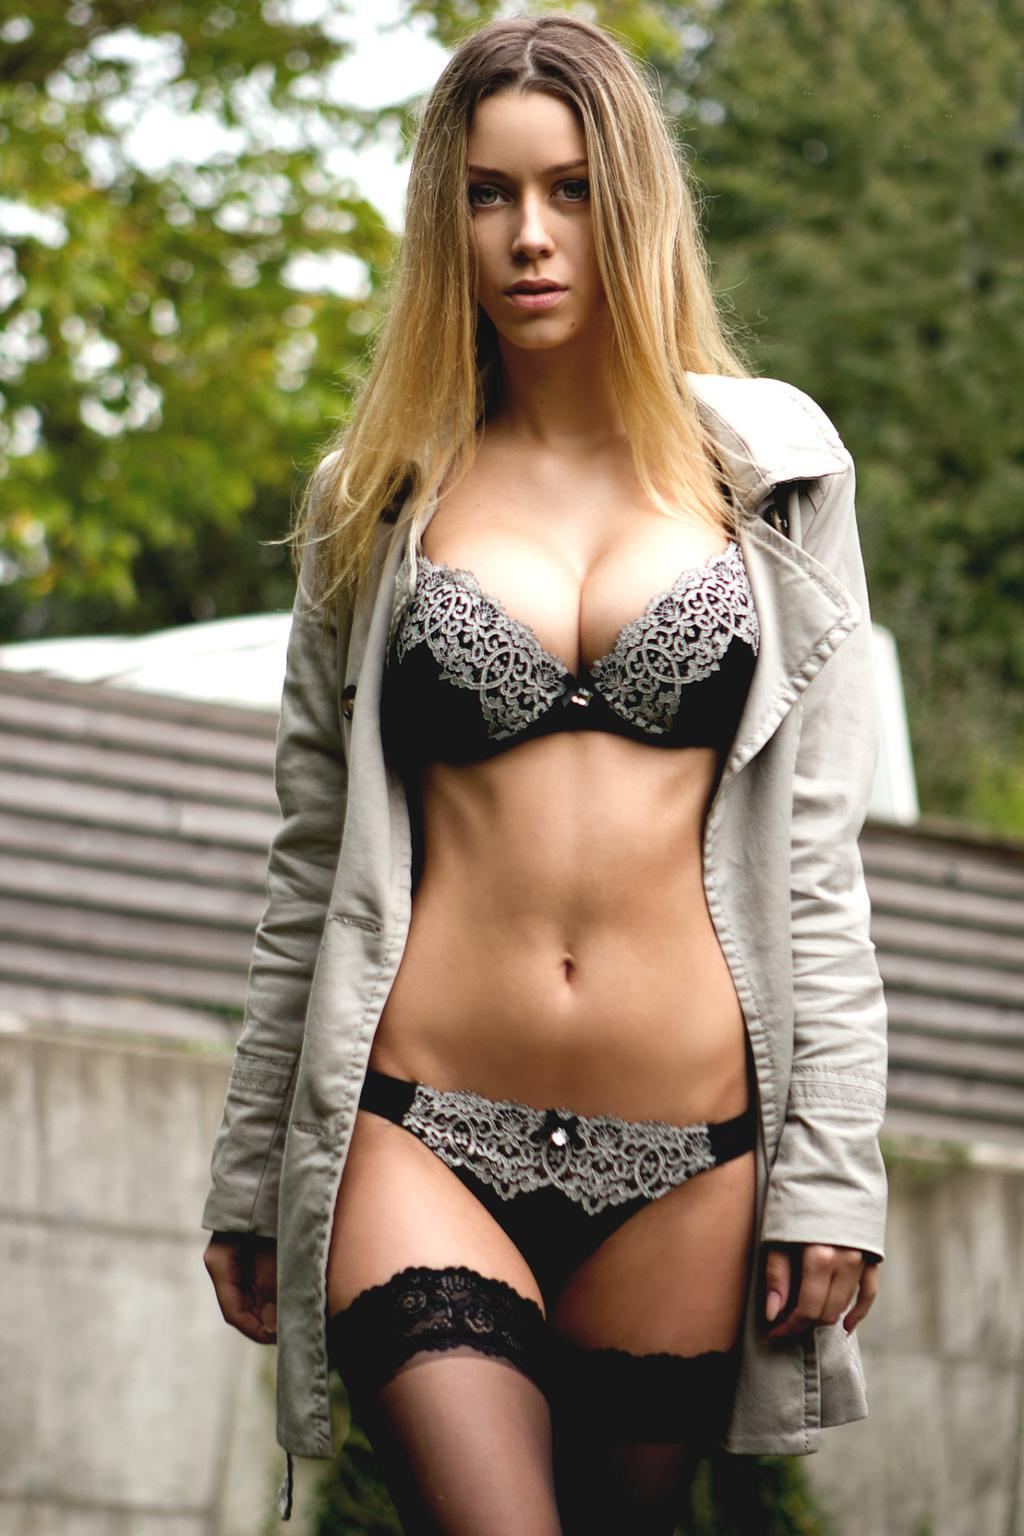 Remarkable, rather hot babe photos consider